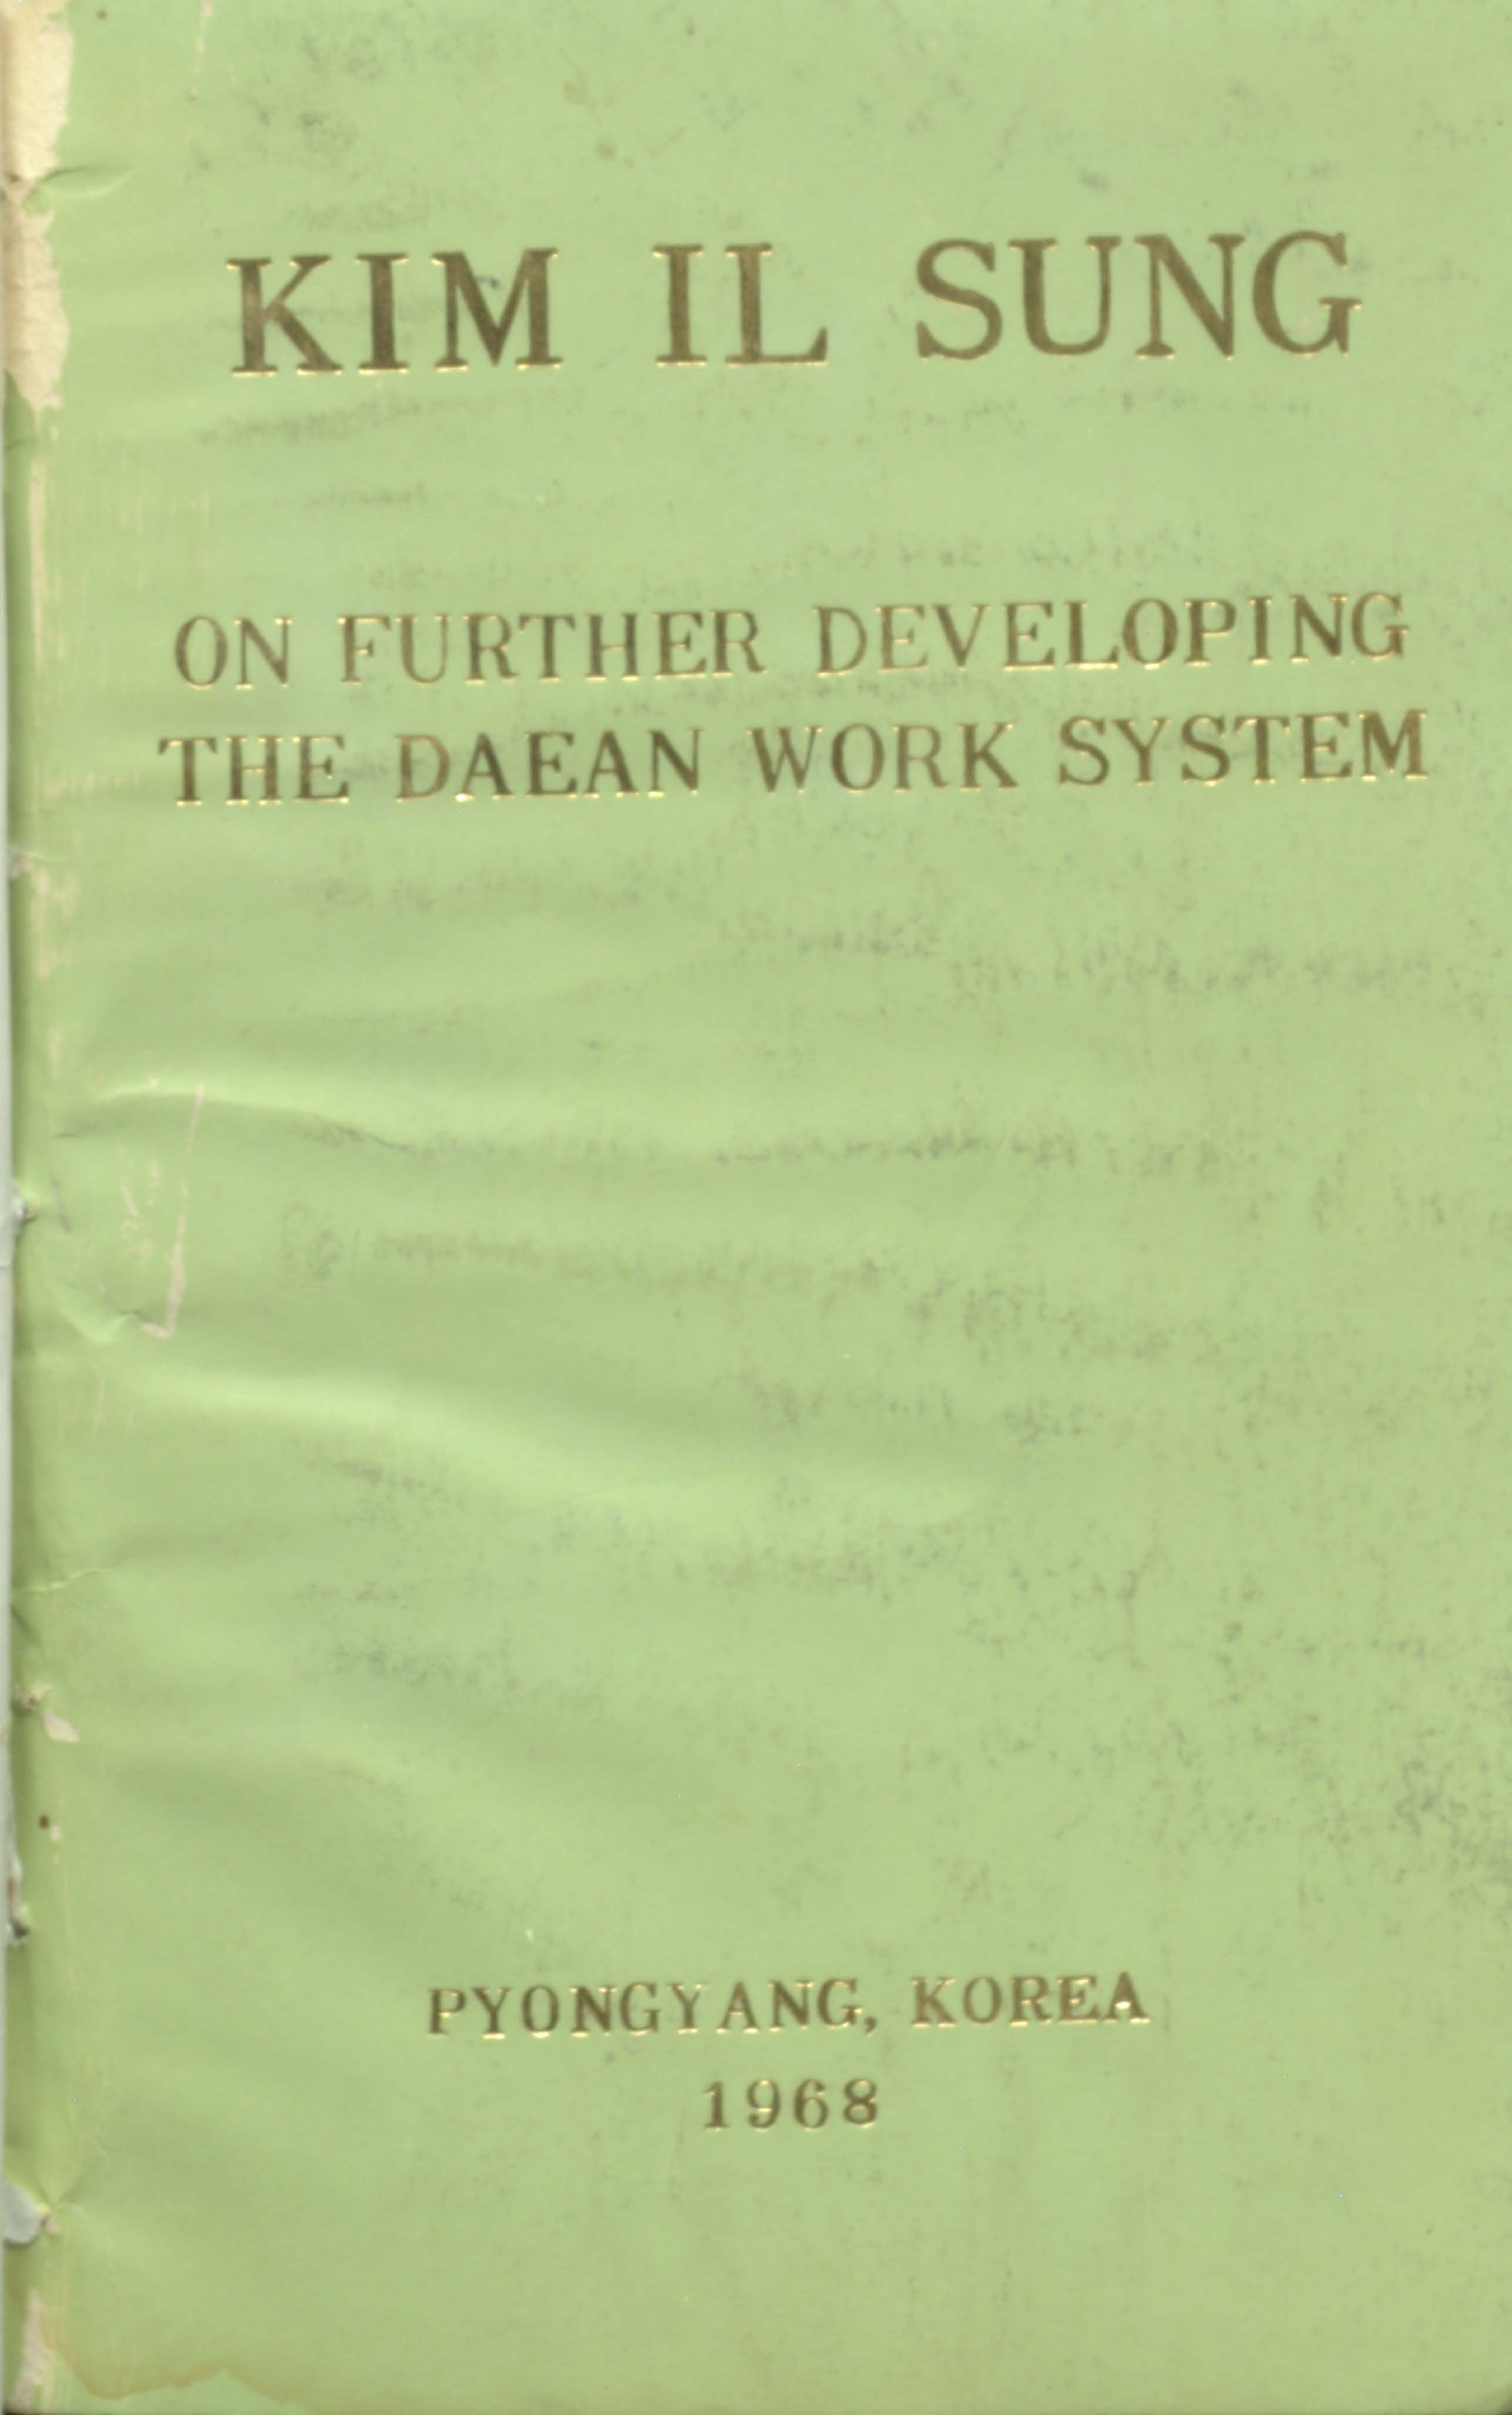 KIM IL SUNG  On further developing th daean work system